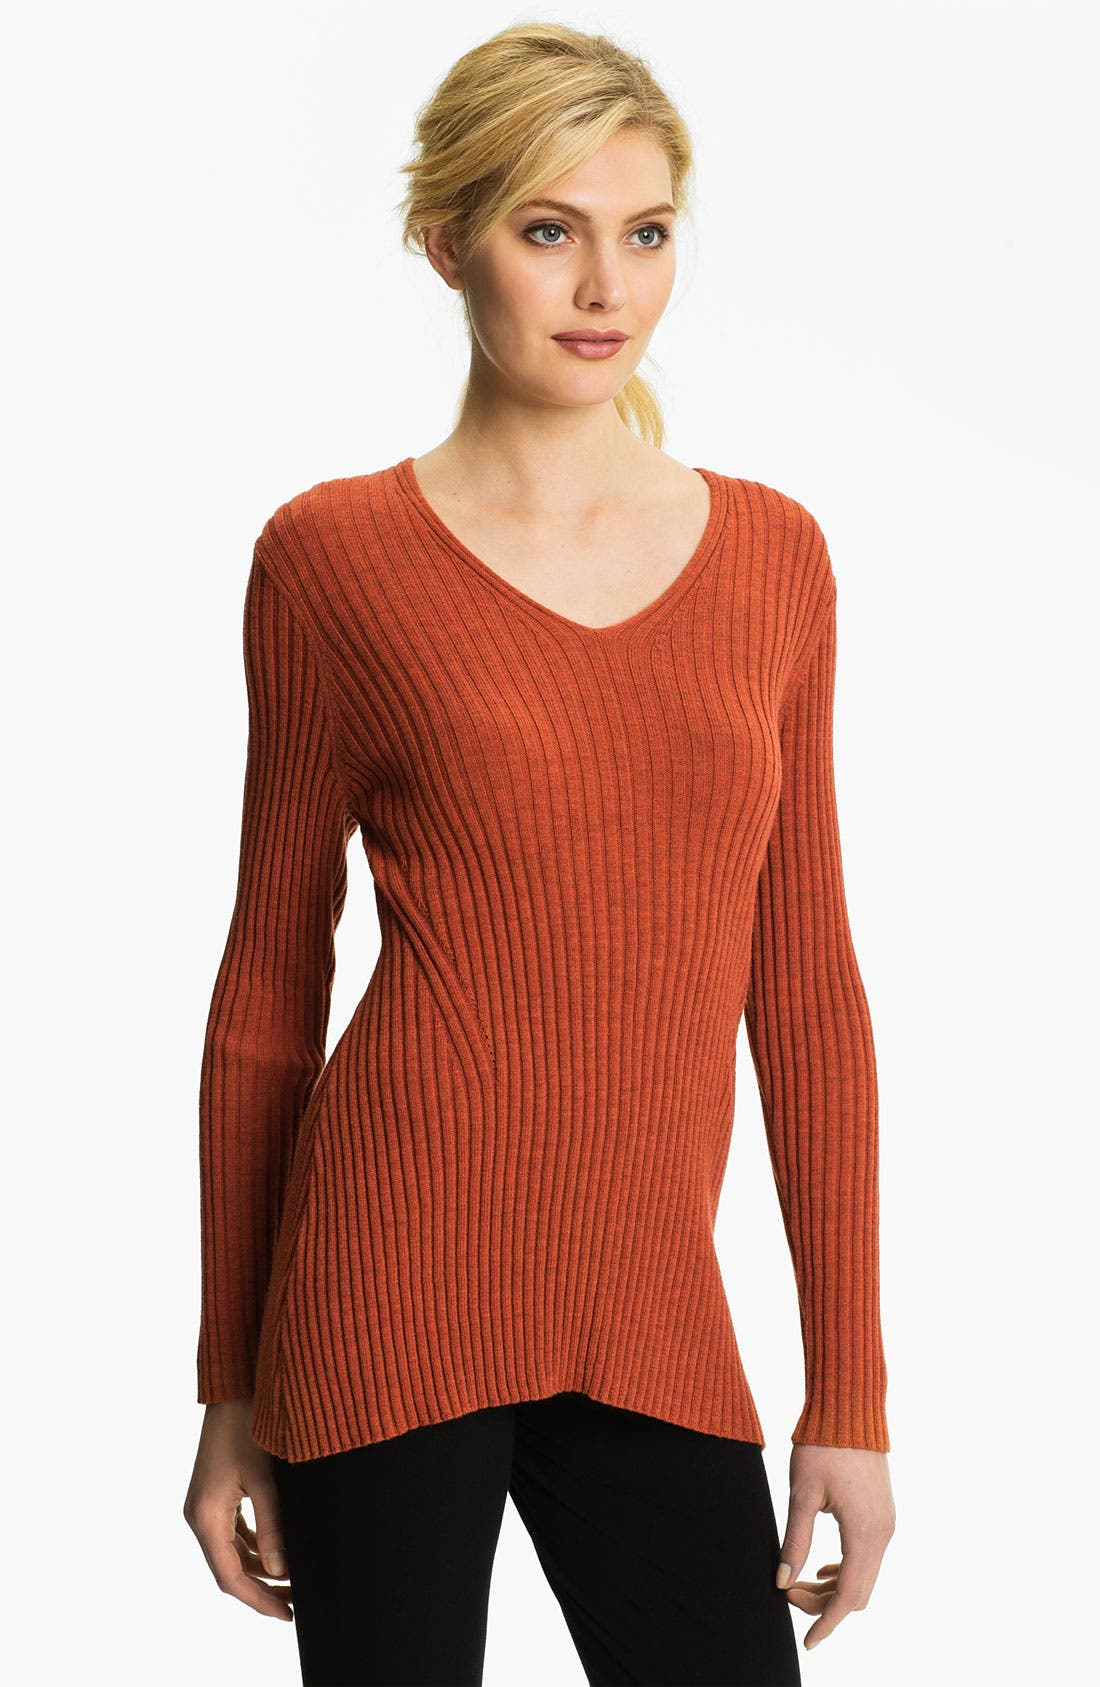 Alternate Image 1 Selected - Eileen Fisher Ribbed V-Neck Tunic Sweater (Online Exclusive)